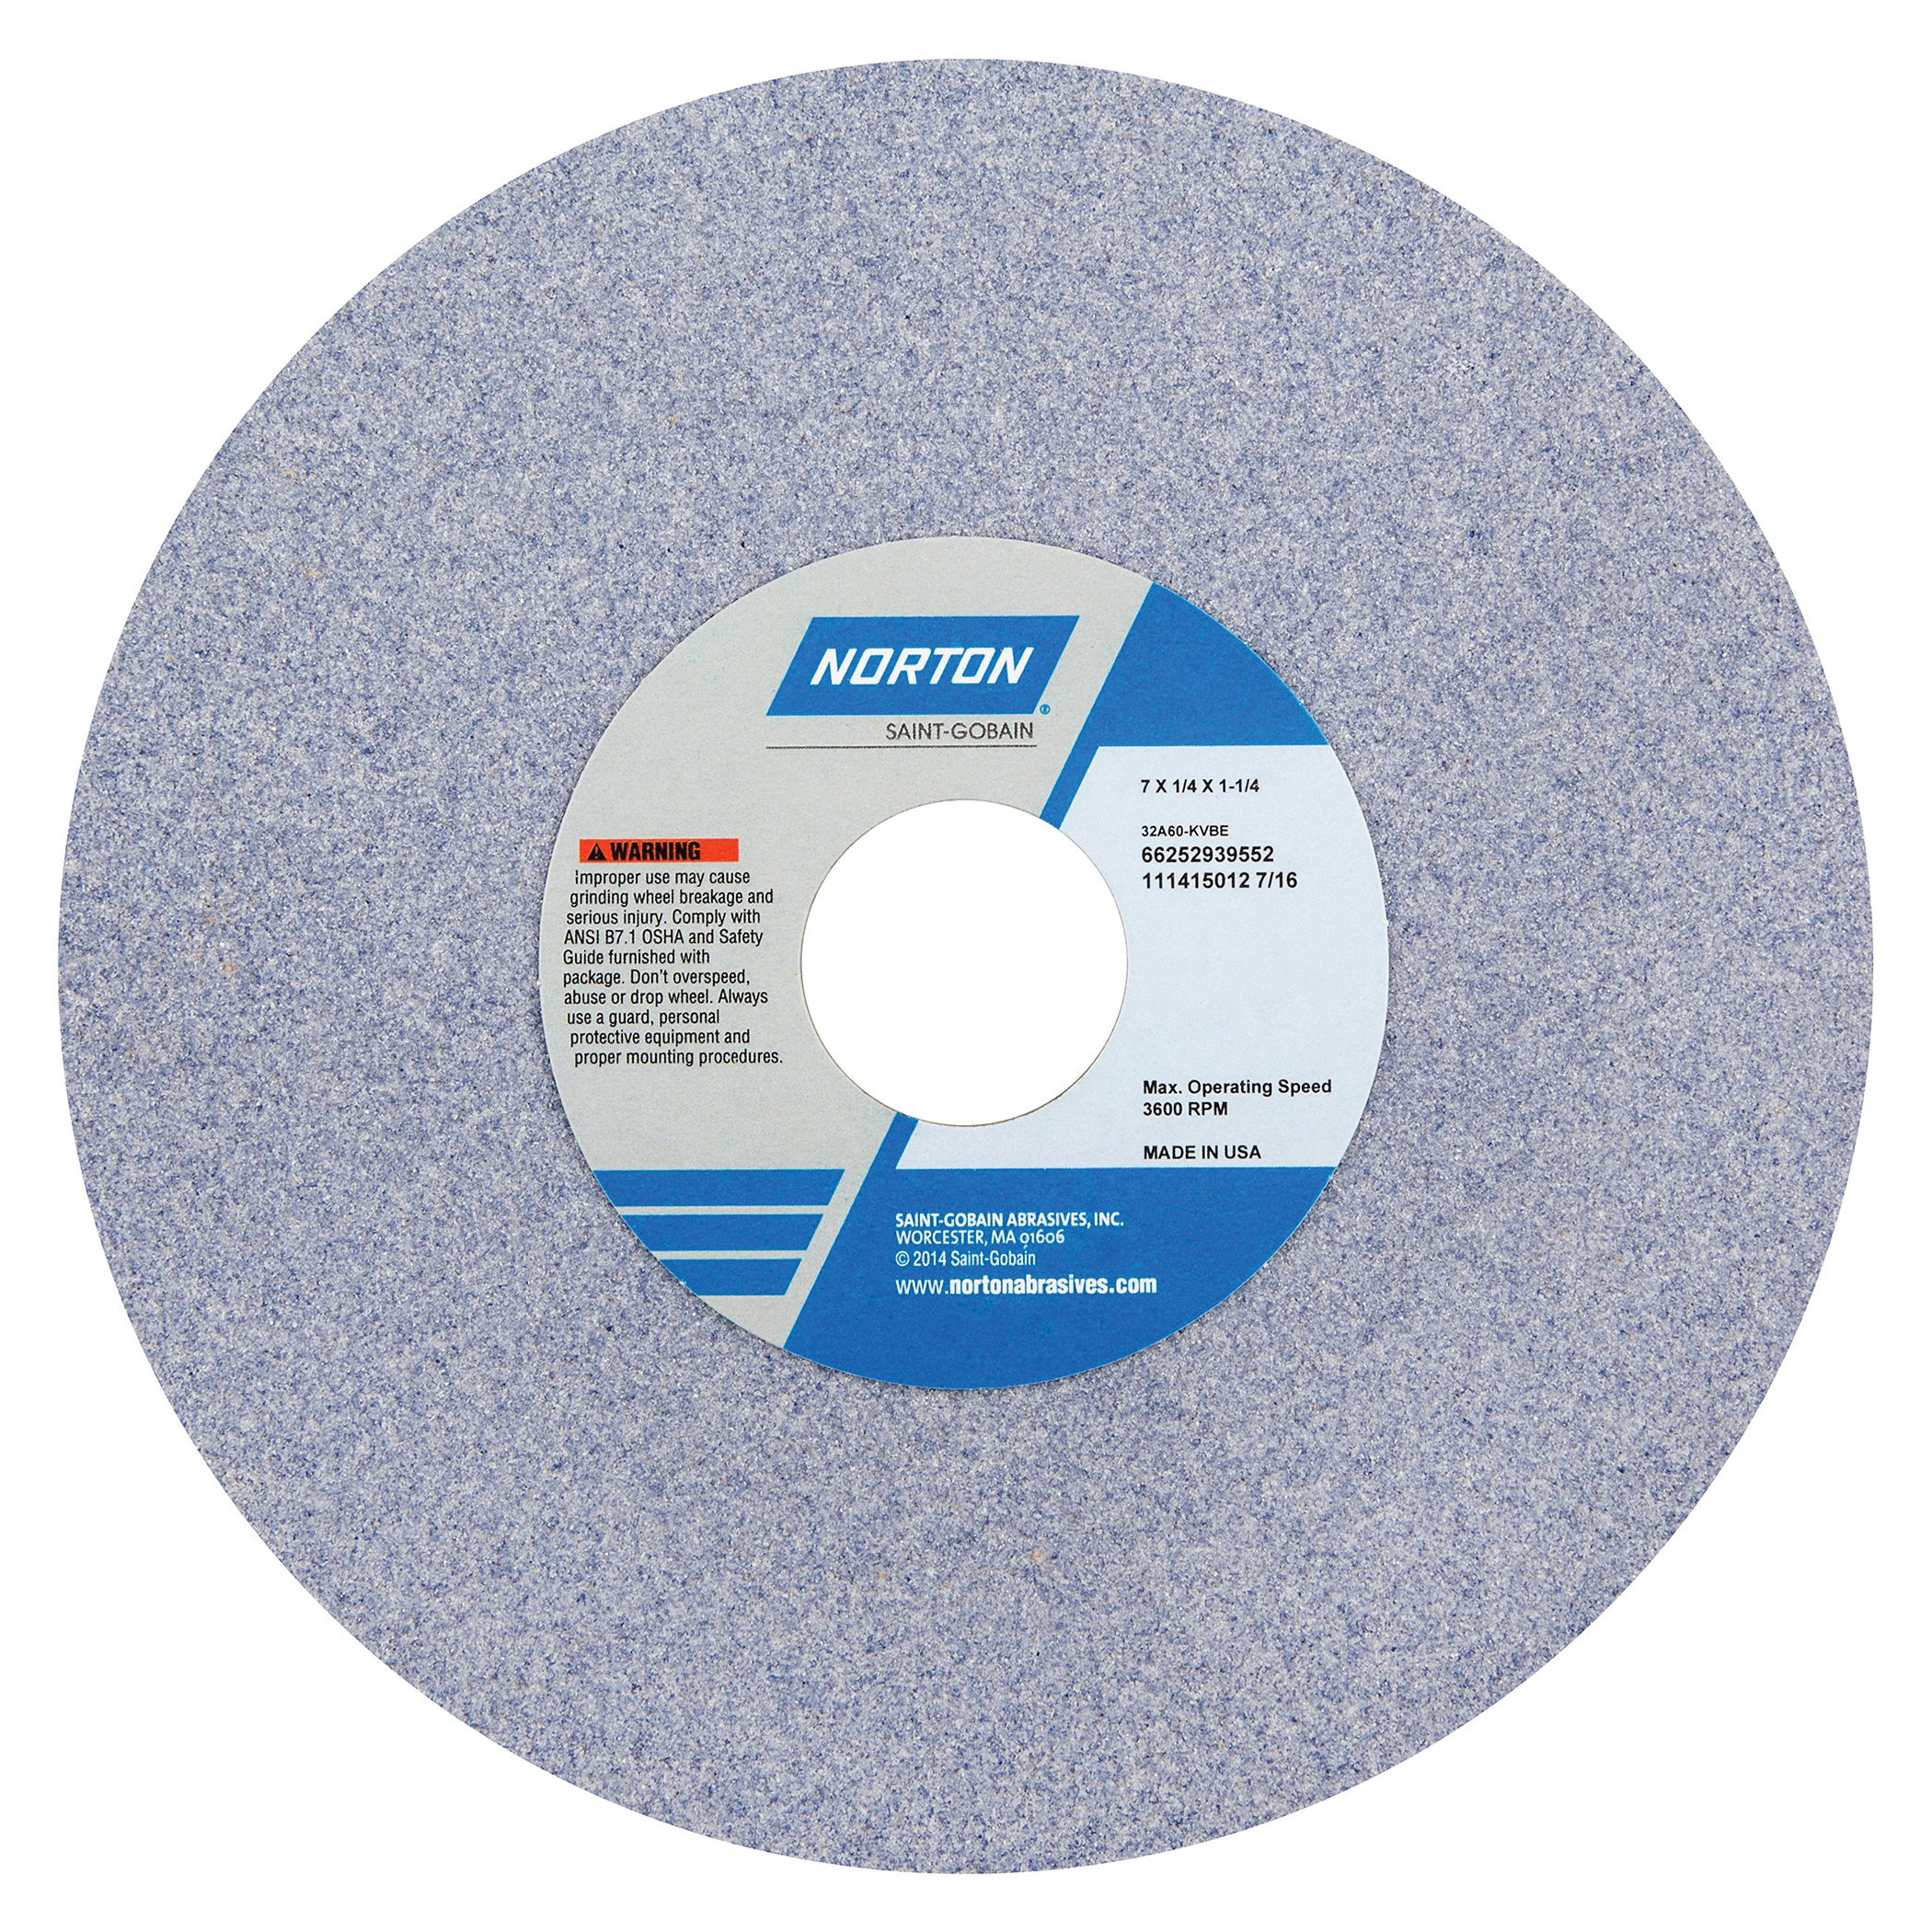 Norton® 66252939862 32A Straight Toolroom Wheel, 7 in Dia x 1/4 in THK, 1-1/4 in Center Hole, 46 Grit, Aluminum Oxide Abrasive